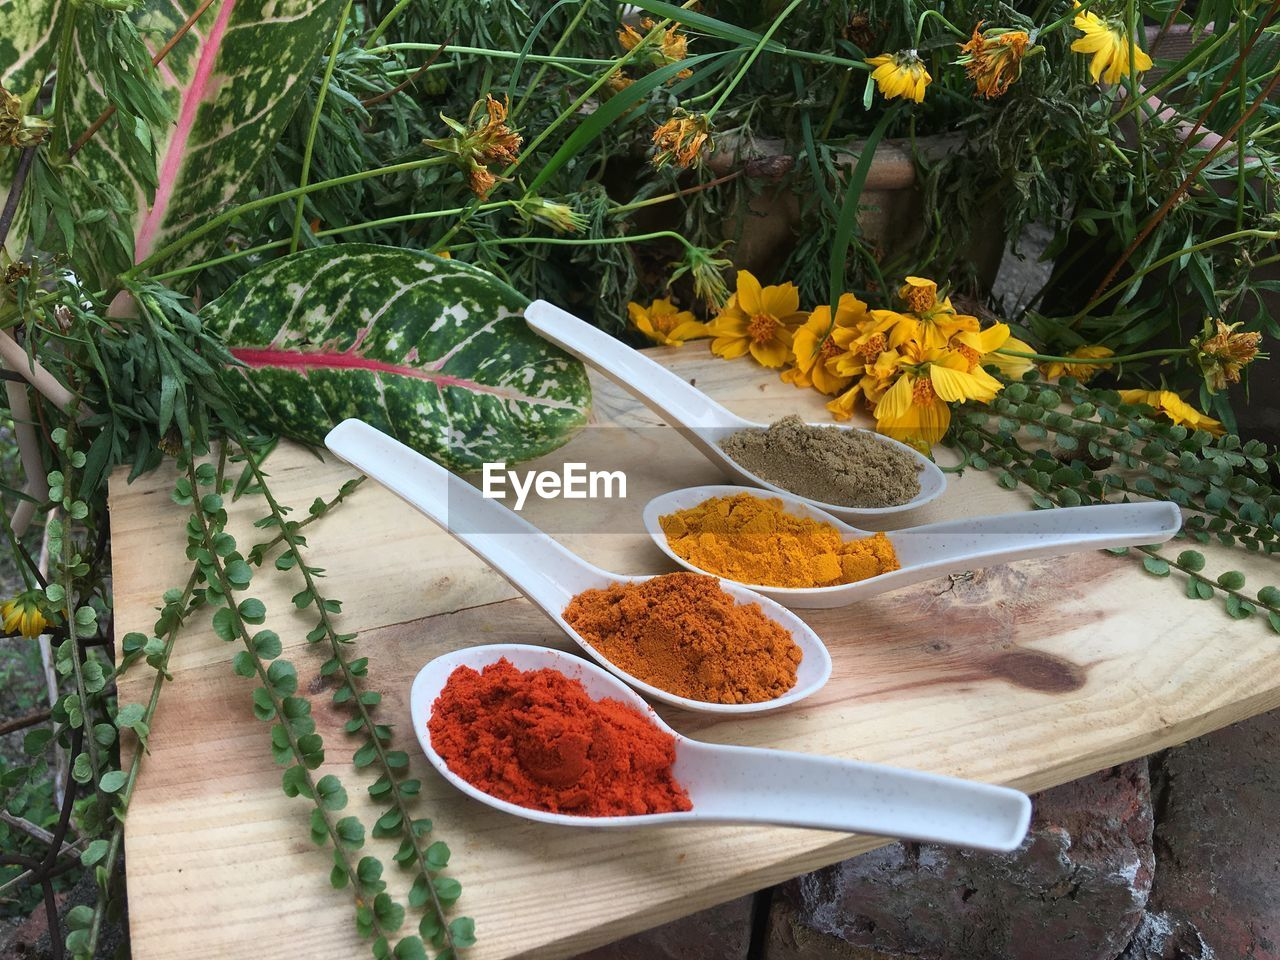 plant, freshness, food, food and drink, spice, spoon, eating utensil, flower, flowering plant, high angle view, no people, table, ingredient, variation, kitchen utensil, choice, wood - material, yellow, green color, chili pepper, herb